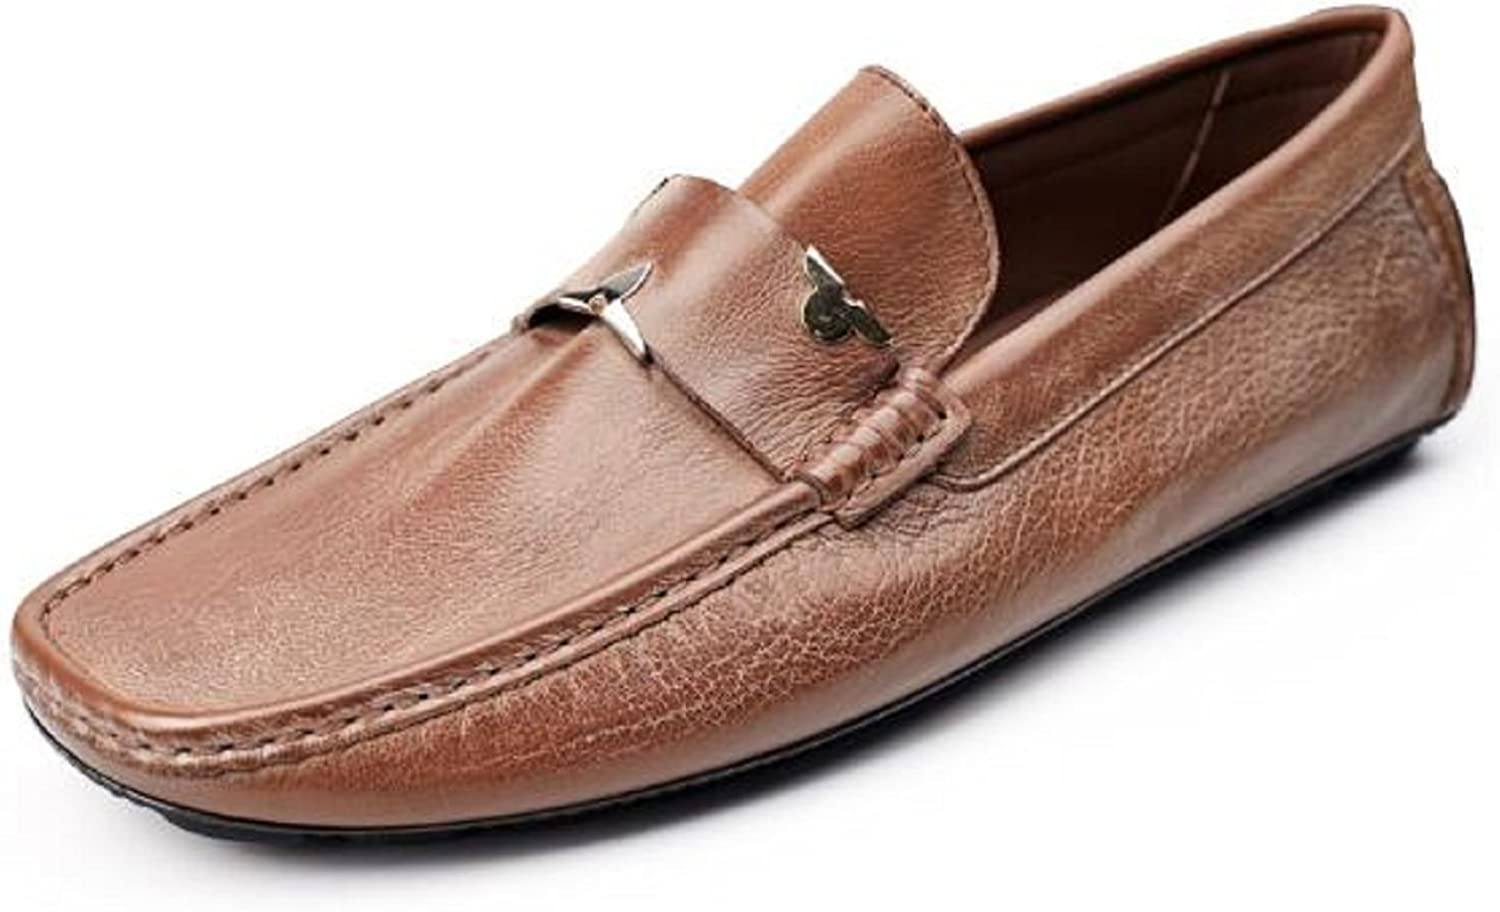 HAPPYSHOP Fashion Classic Business Men's Leather shoes Comfort Slip-on Moccasin Loafers Driving shoes Black